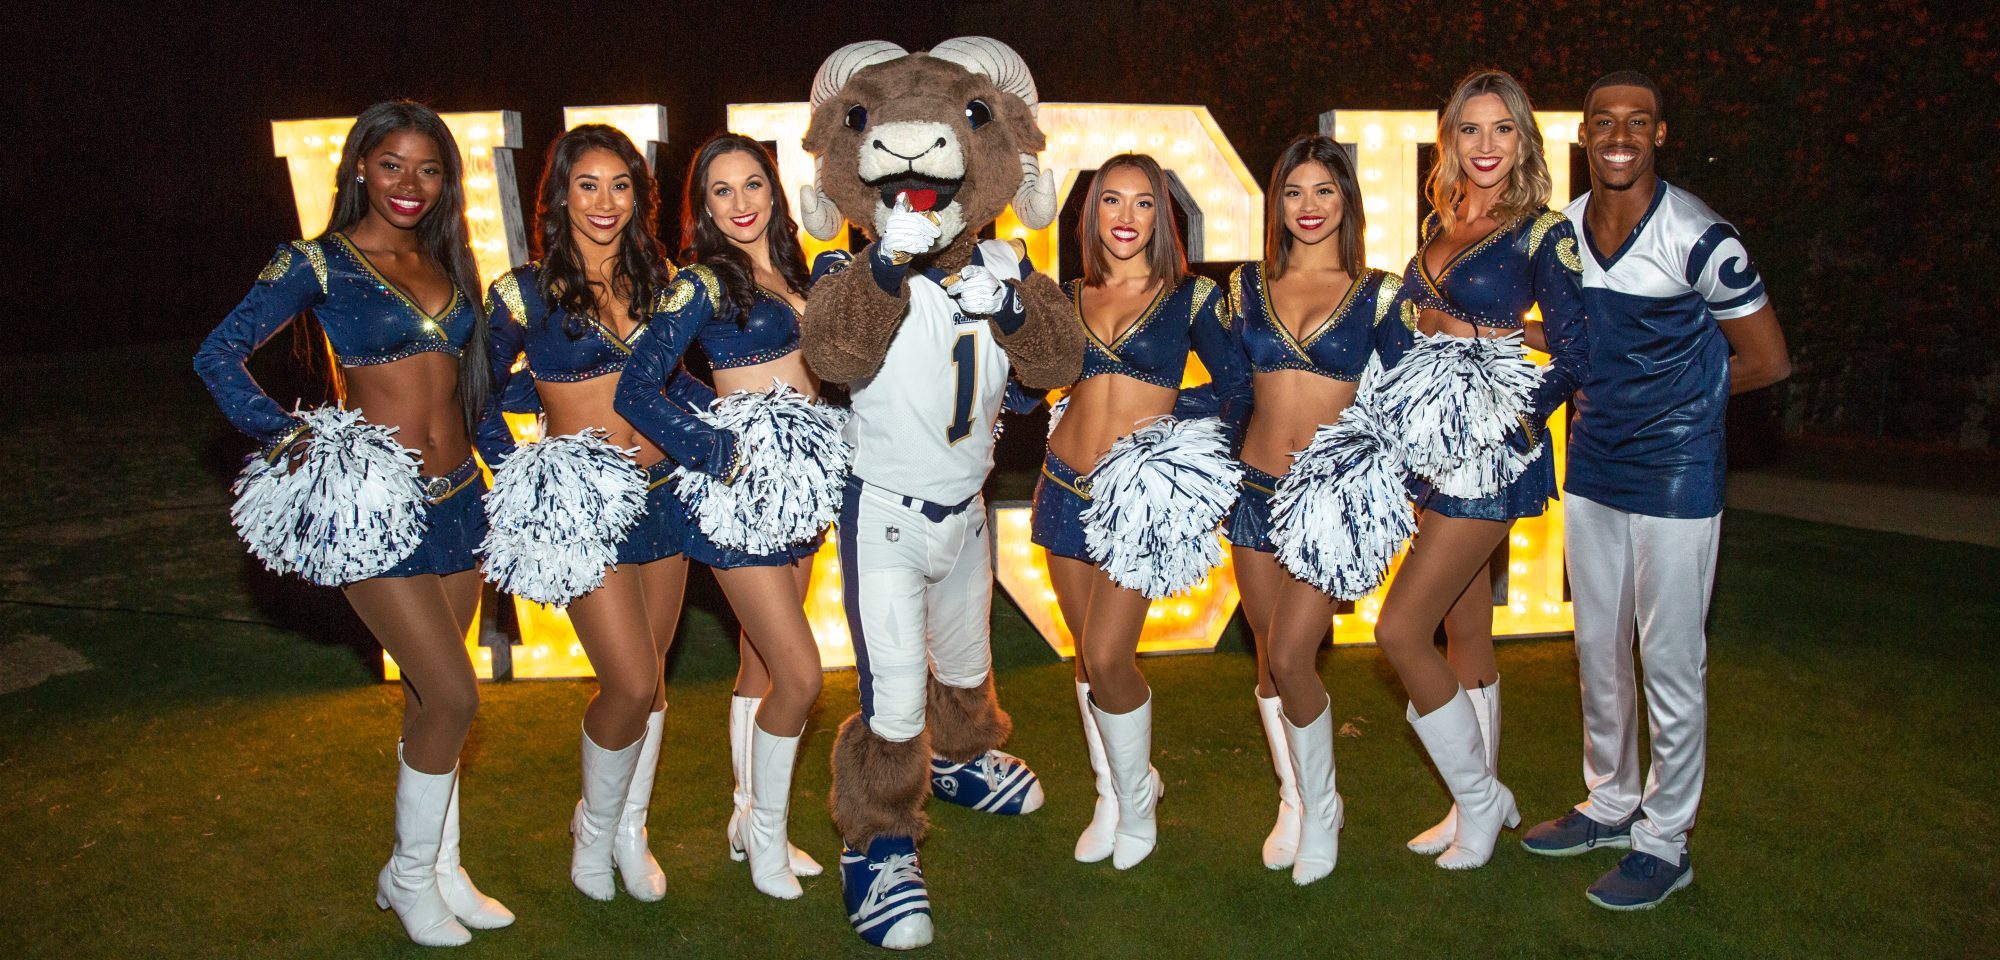 LA Rams Night for Wishes! Make-A-Wish Tri-Counties